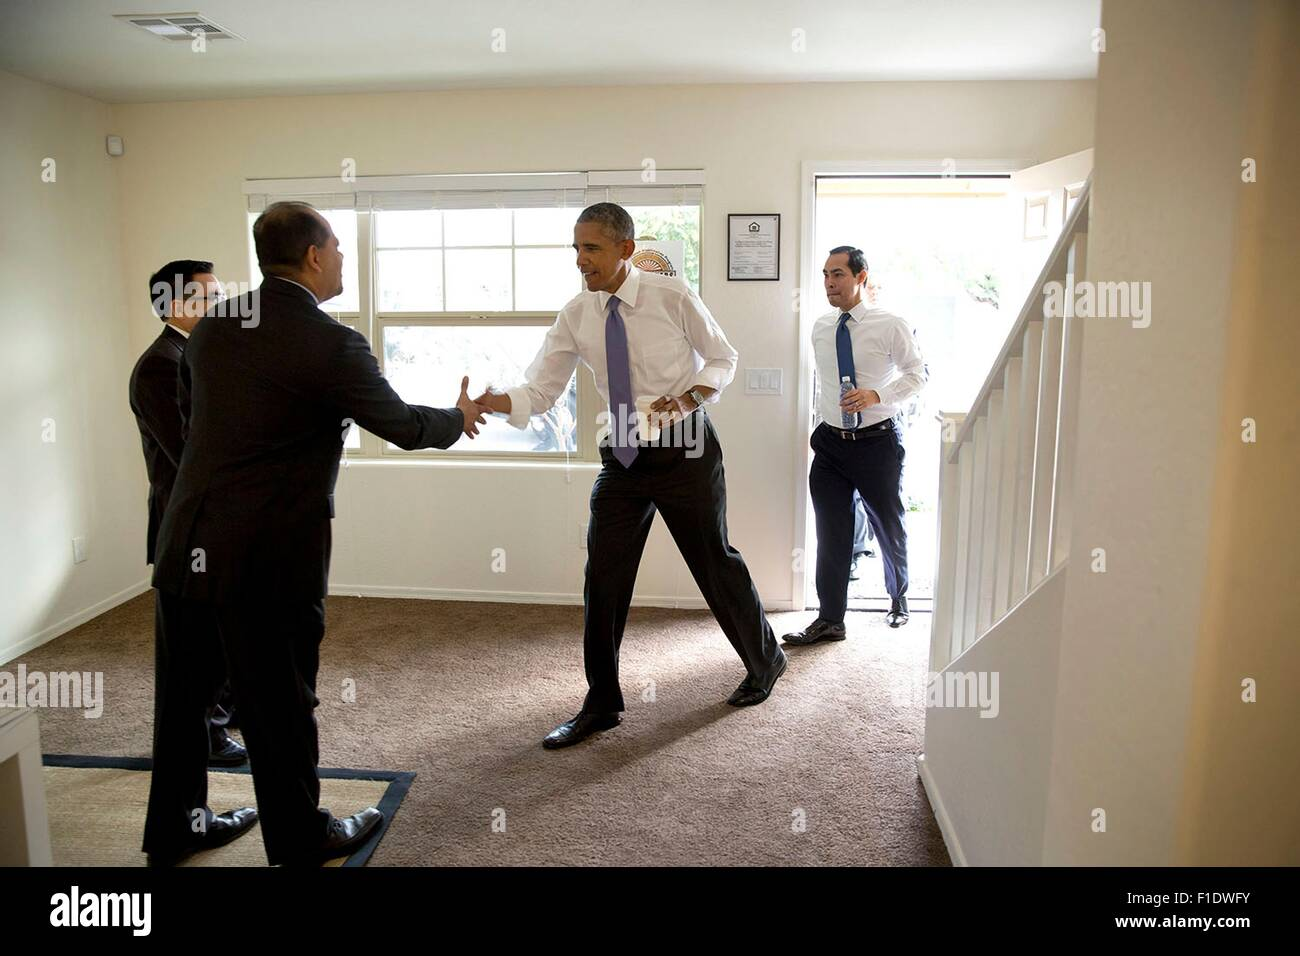 U.S. President Barack Obama and Housing and Urban Development Secretary Juli‡an Castro visit a model home at the - Stock Image